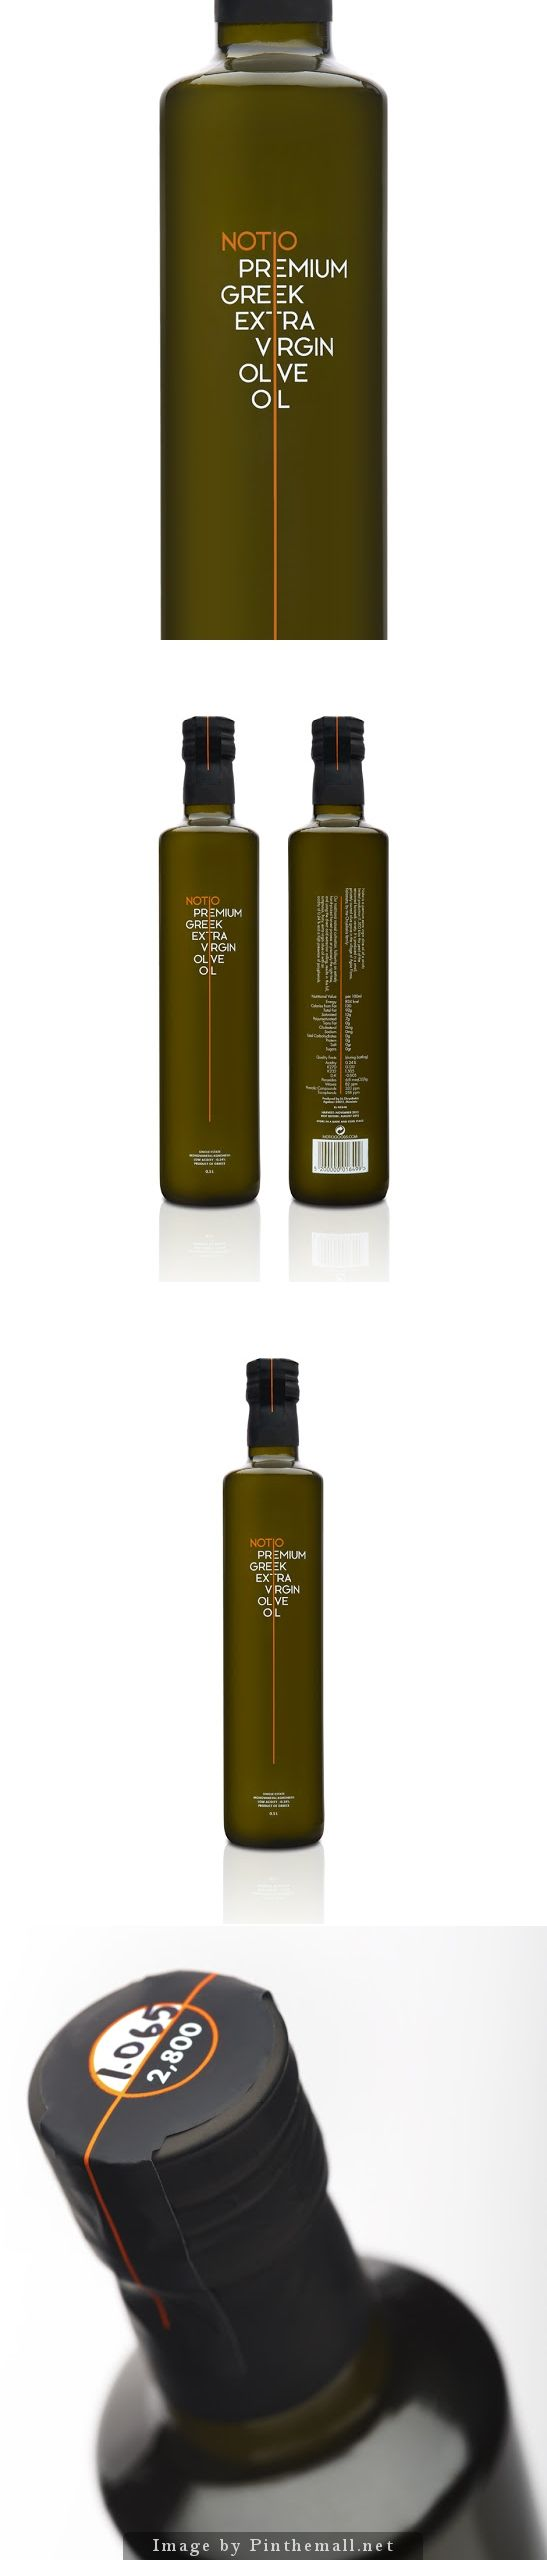 Notio Premium Extra Virgin Olive Oil designed by Yiorgos Yiacos (of The Comeback Studio)